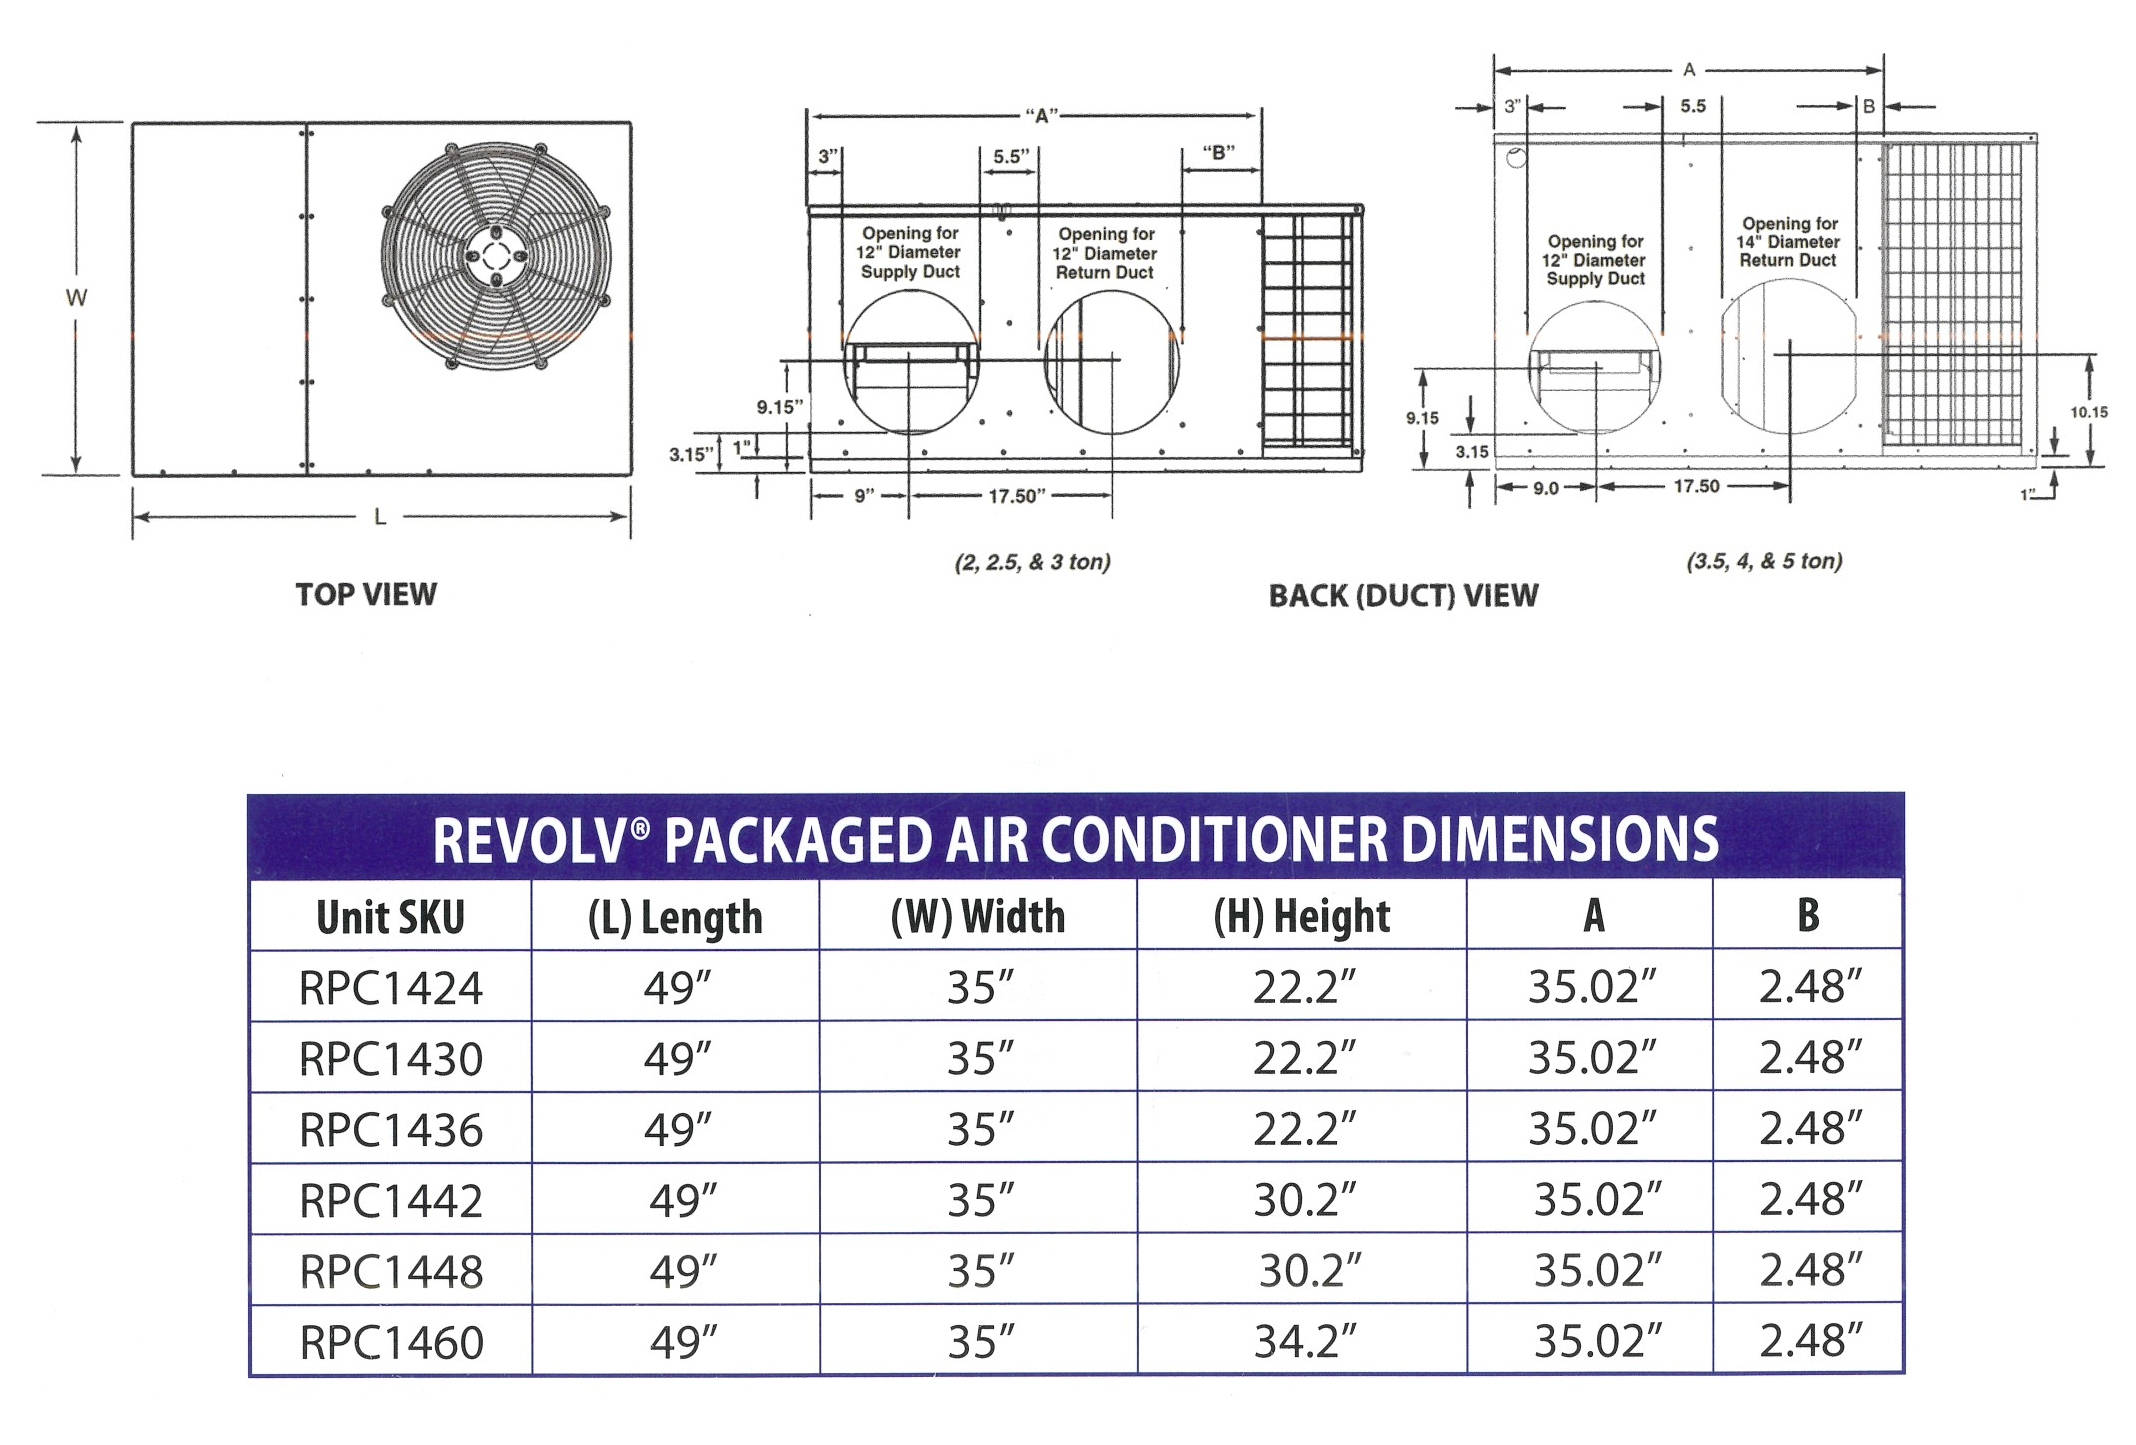 REVOLV PACKAGED AIR CONDITIONER DIMENSIONS